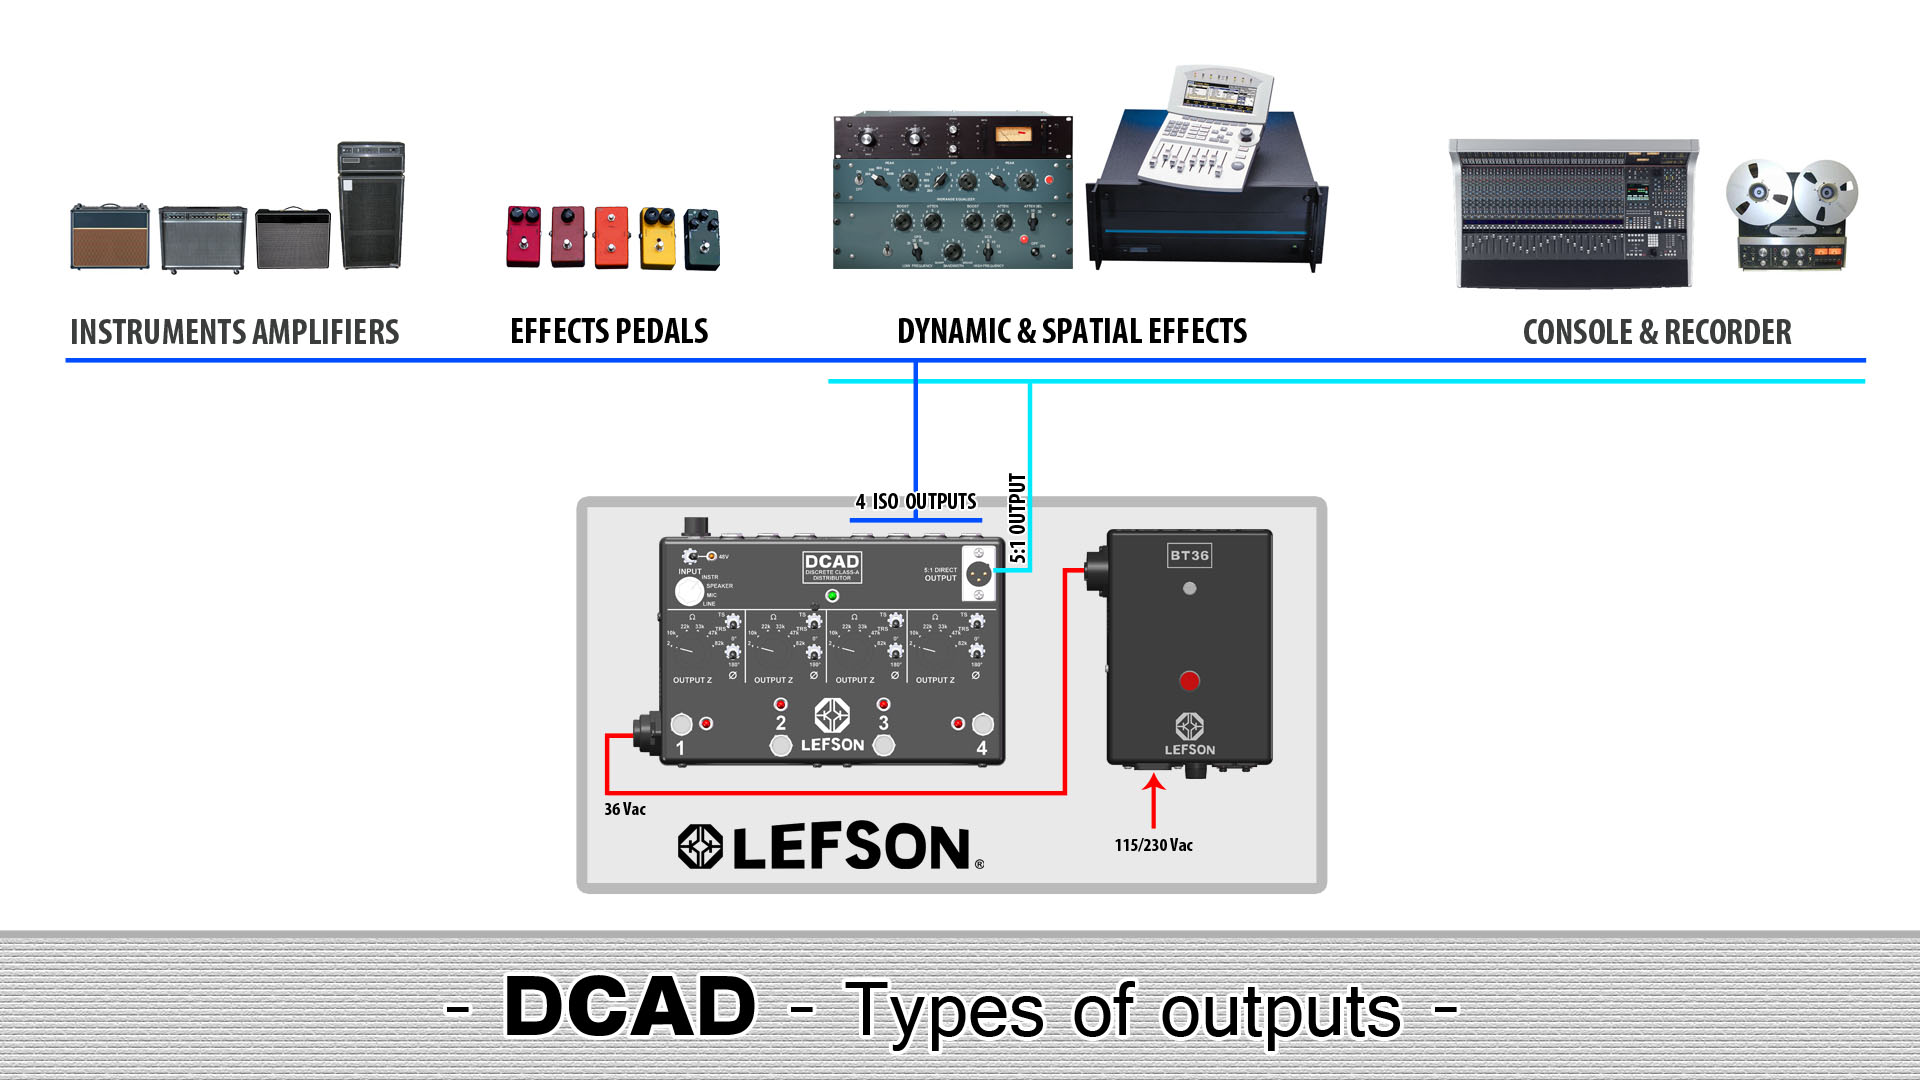 Picture of the output types of the DCAD